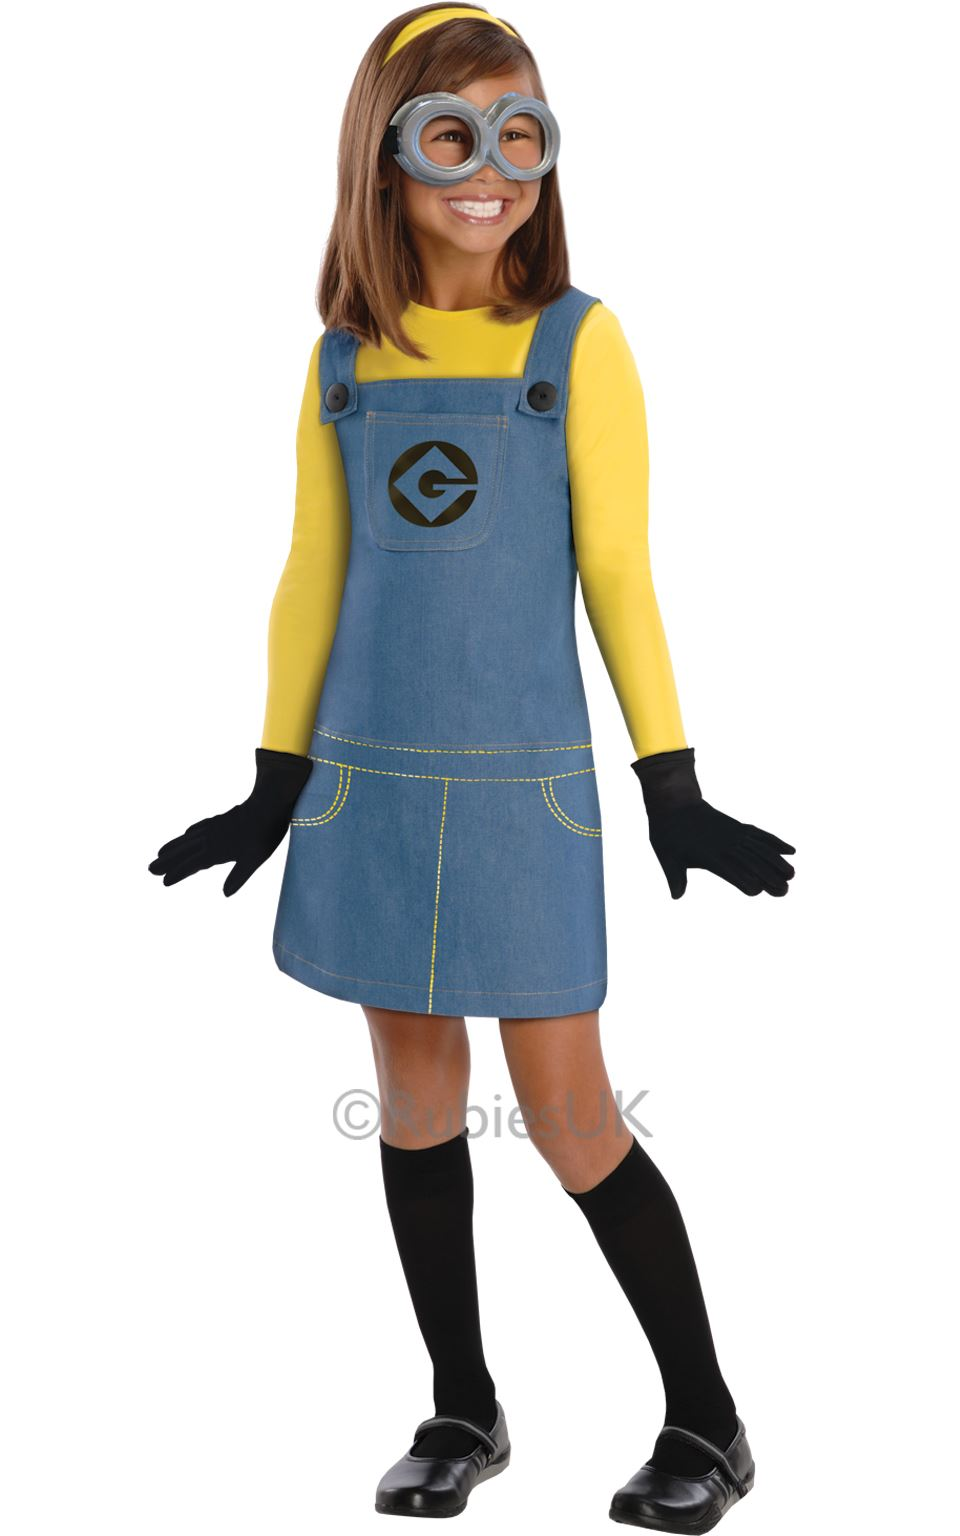 ADULT-KIDS-BOYS-GIRLS-LADIES-MENS-DESPICABLE-ME-GRU-MINION-FANCY-DRESS-COSTUME